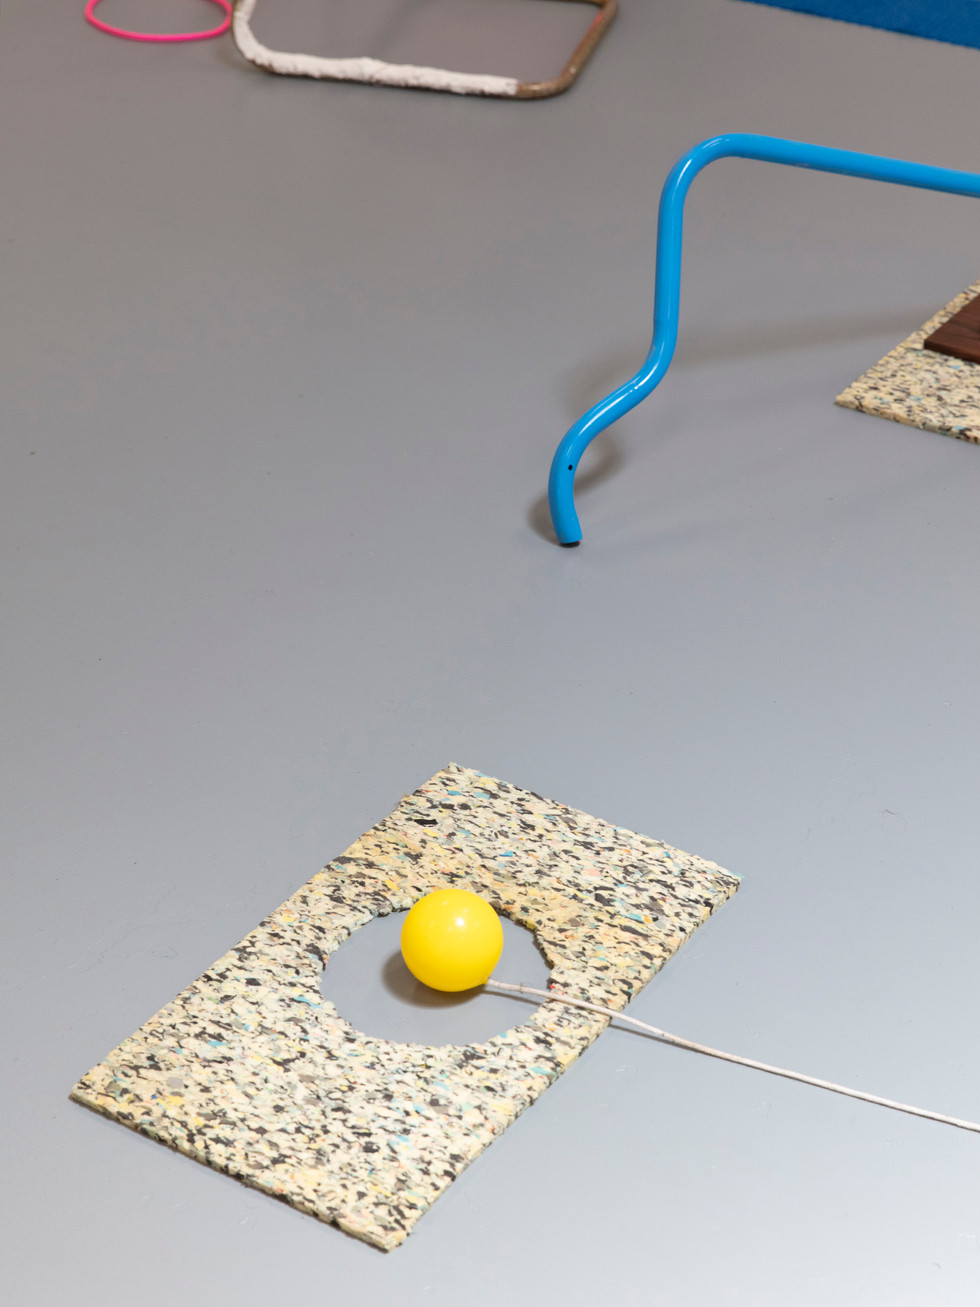 Megan Shaw,  Miscellaneous Goods (detail) 2018. Discarded objects and play equipment, dimensions variable. Curtin Graduation Show, Curtin University, Western Australia. Photo credit Bo Wong